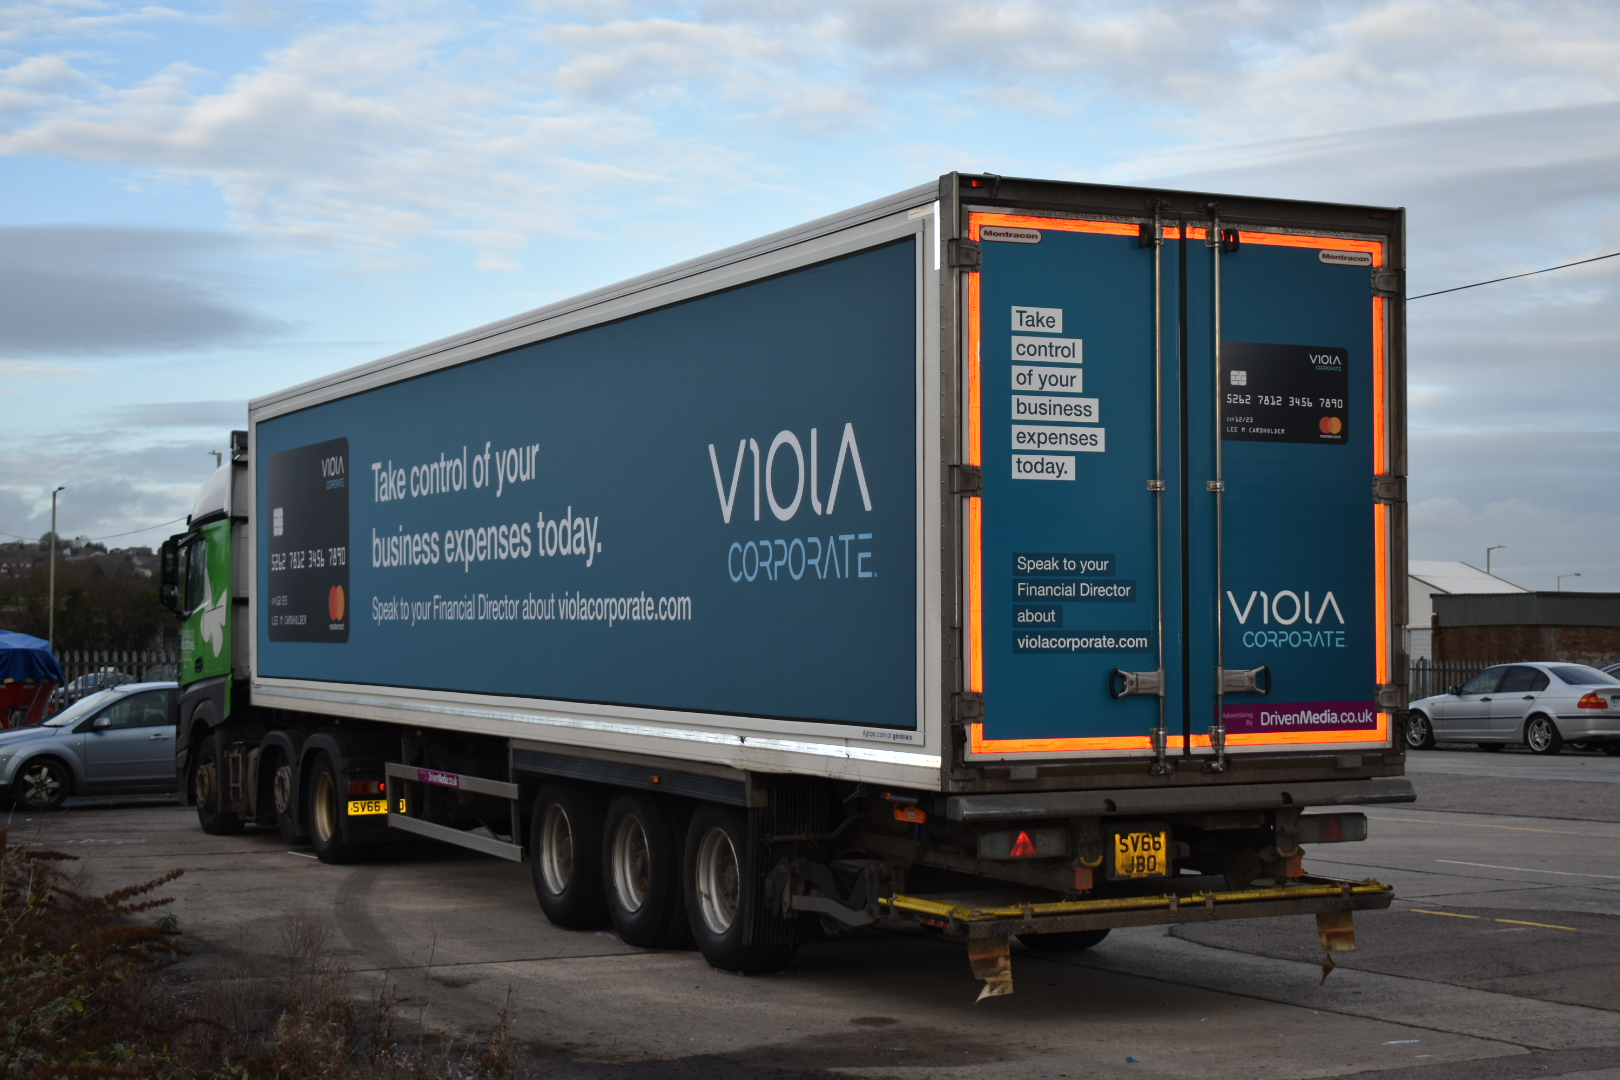 Viola Corporate truck advertising